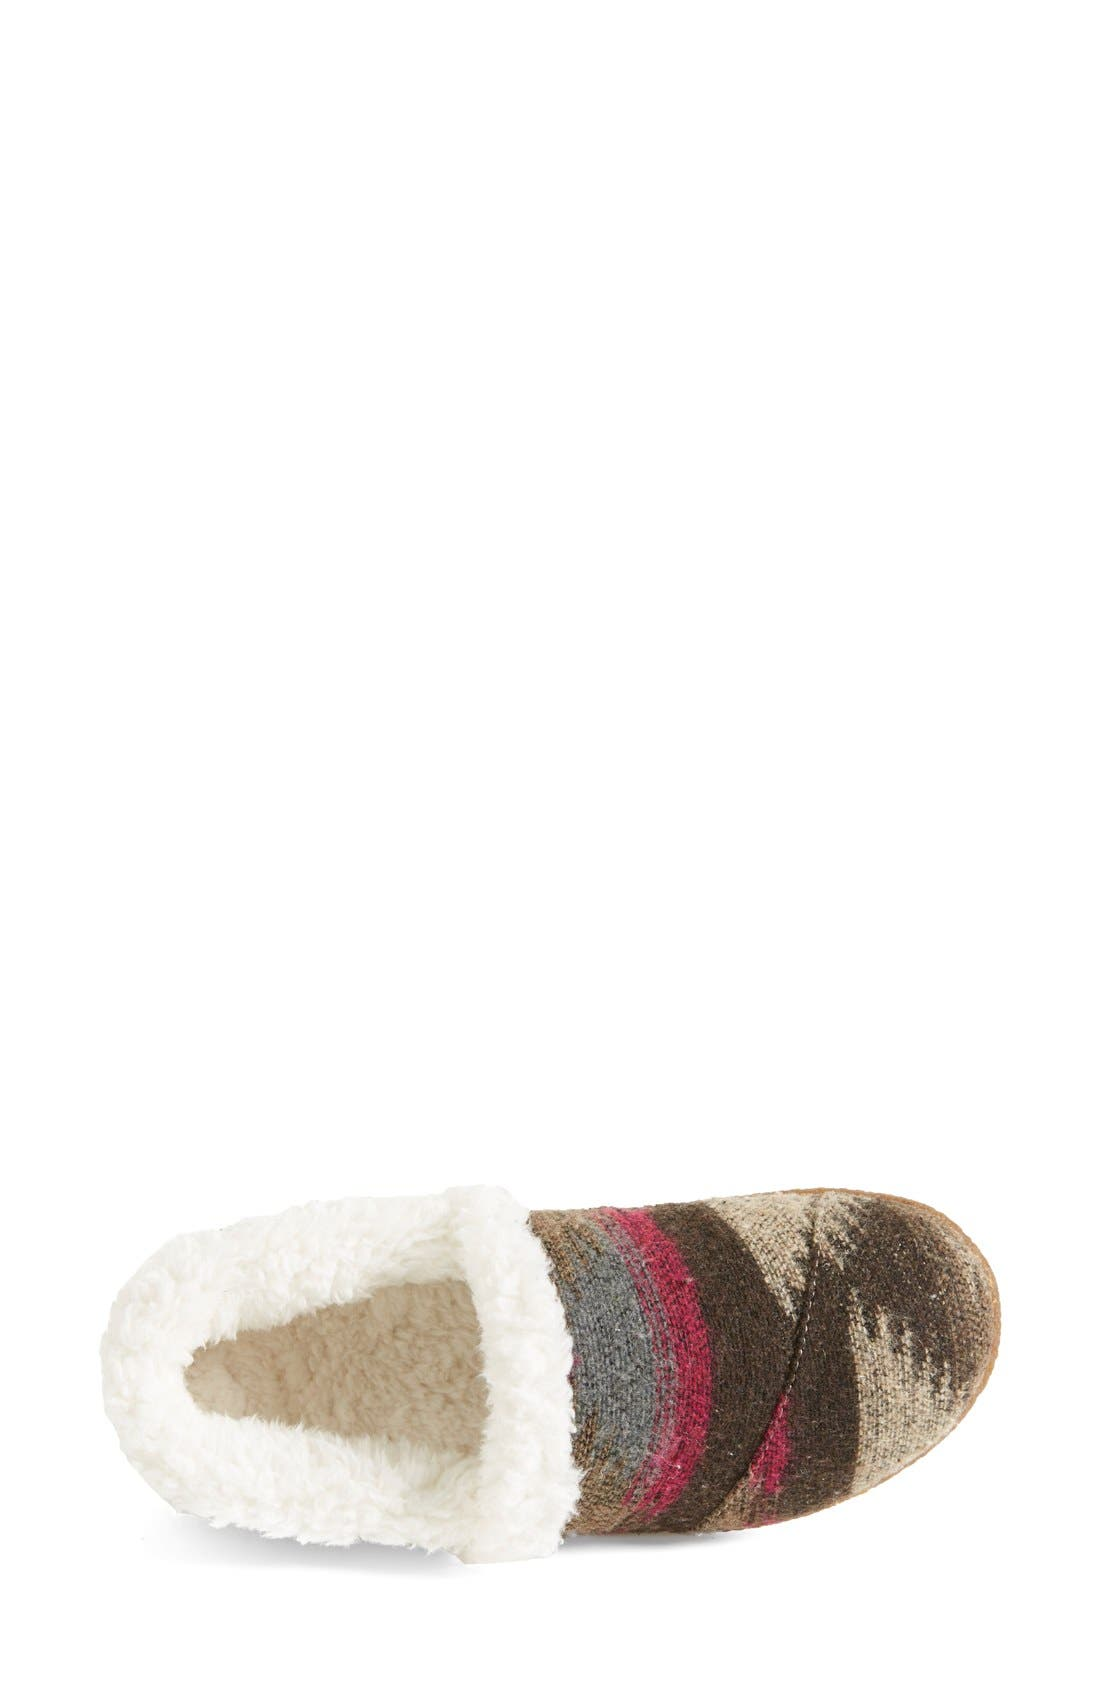 Alternate Image 3  - TOMS 'Classic - Wool' Slippers (Women)